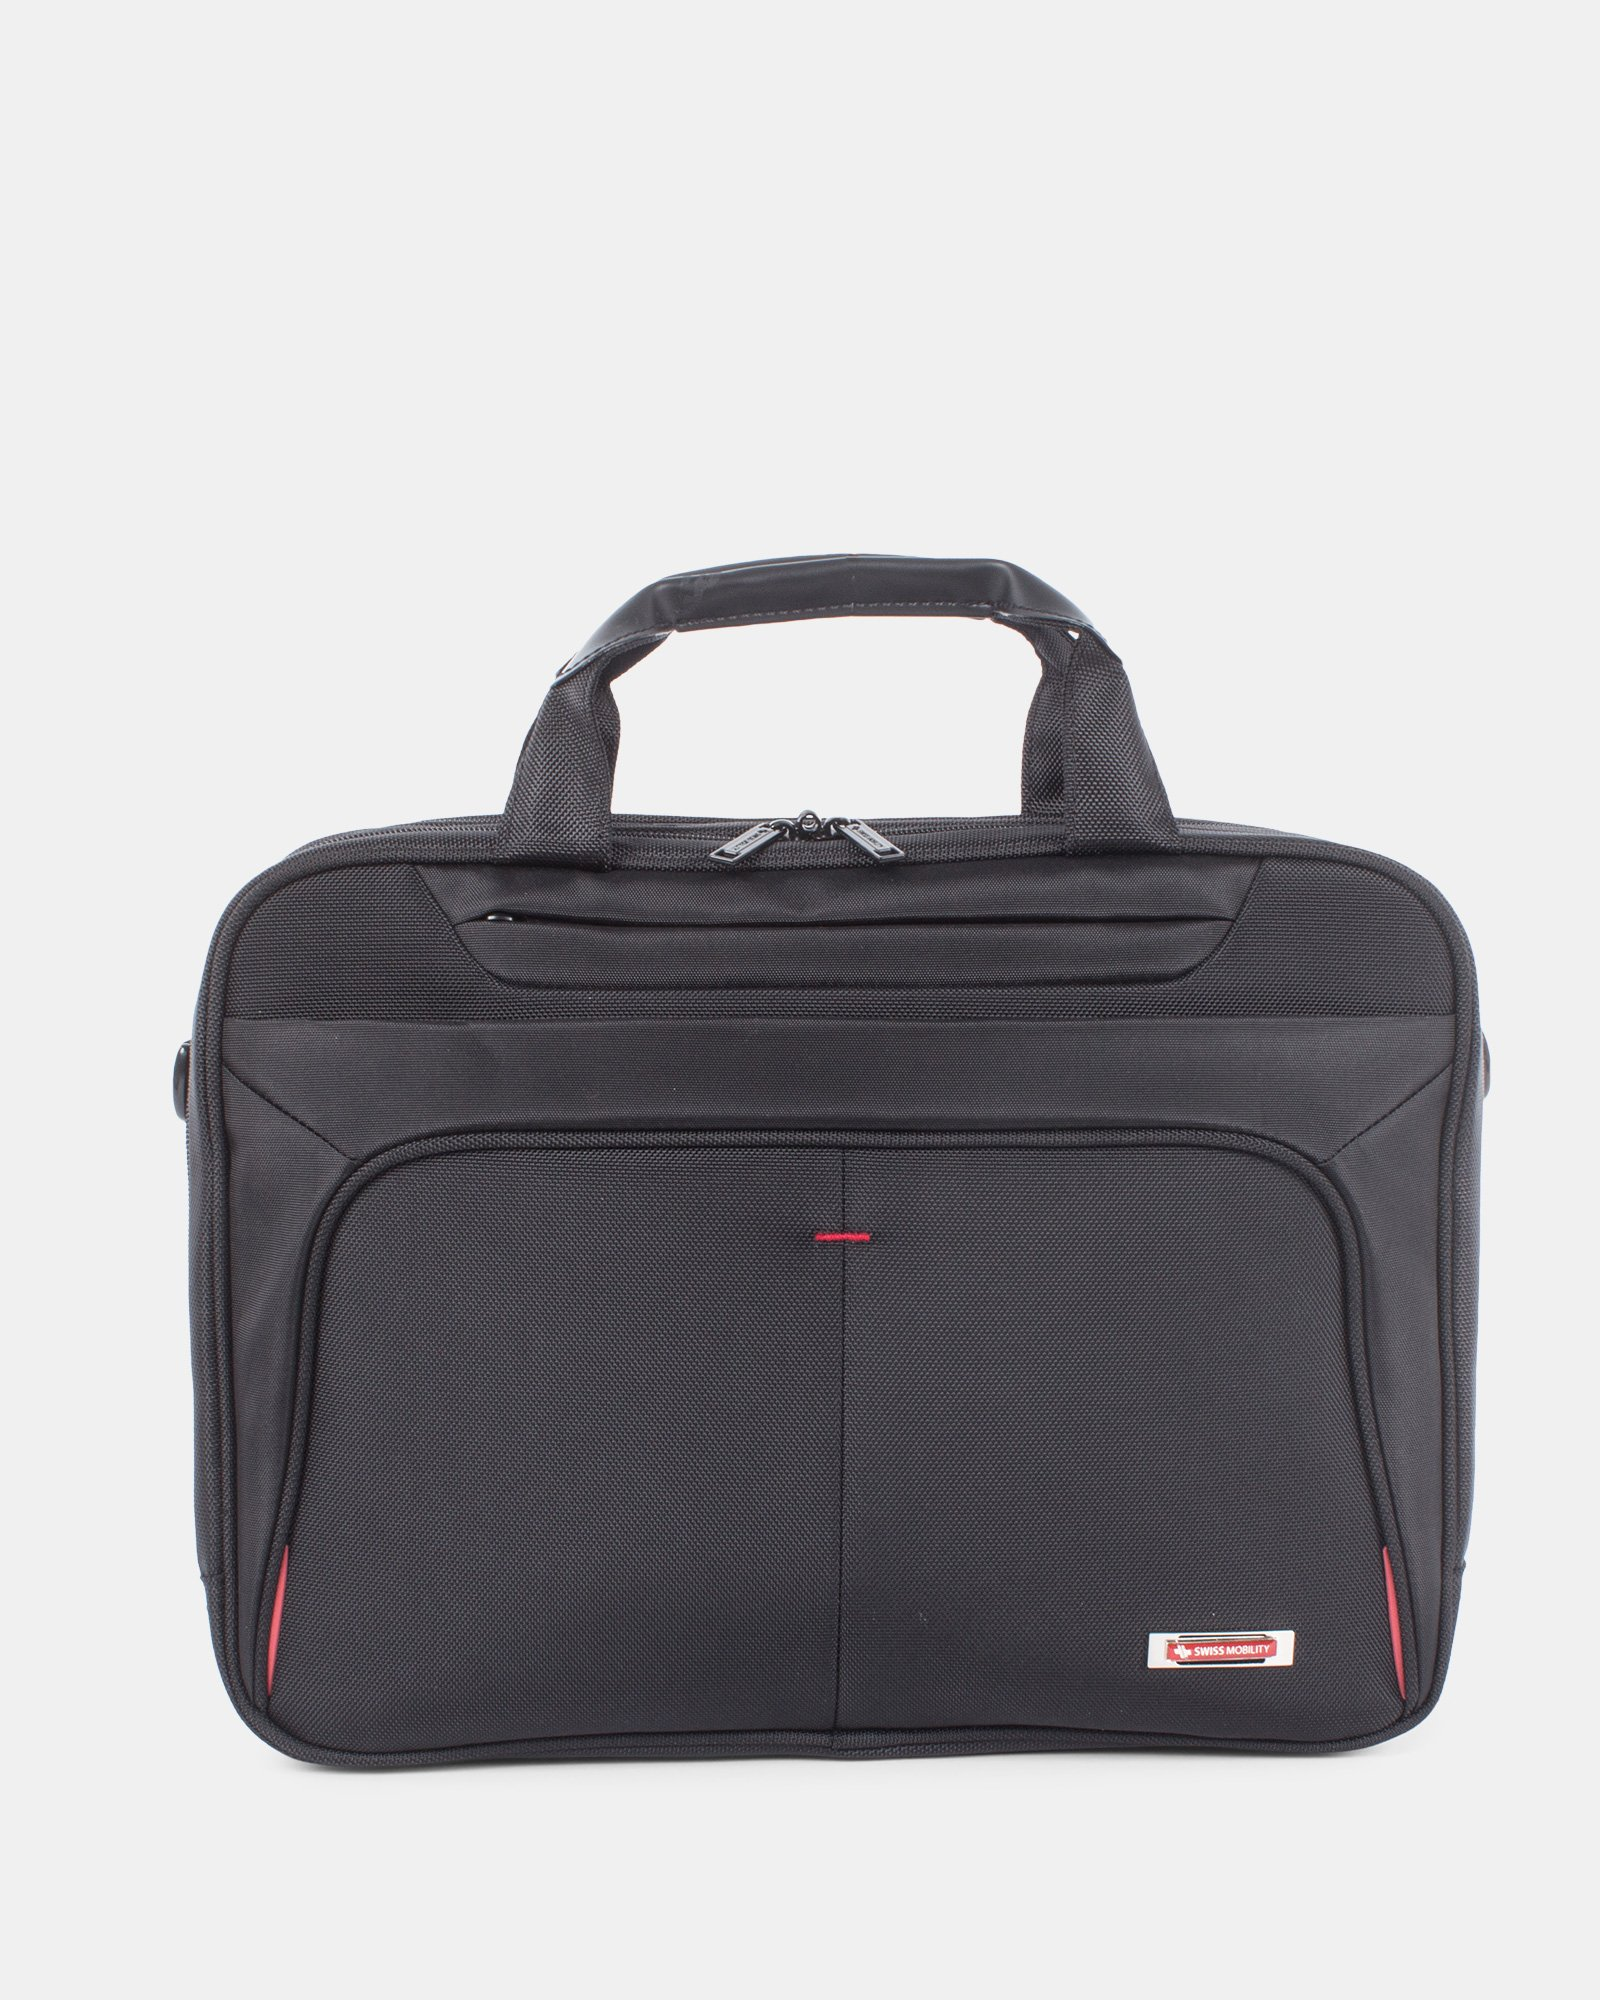 Purpose-Briefcase - Swiss Mobility - Zoom